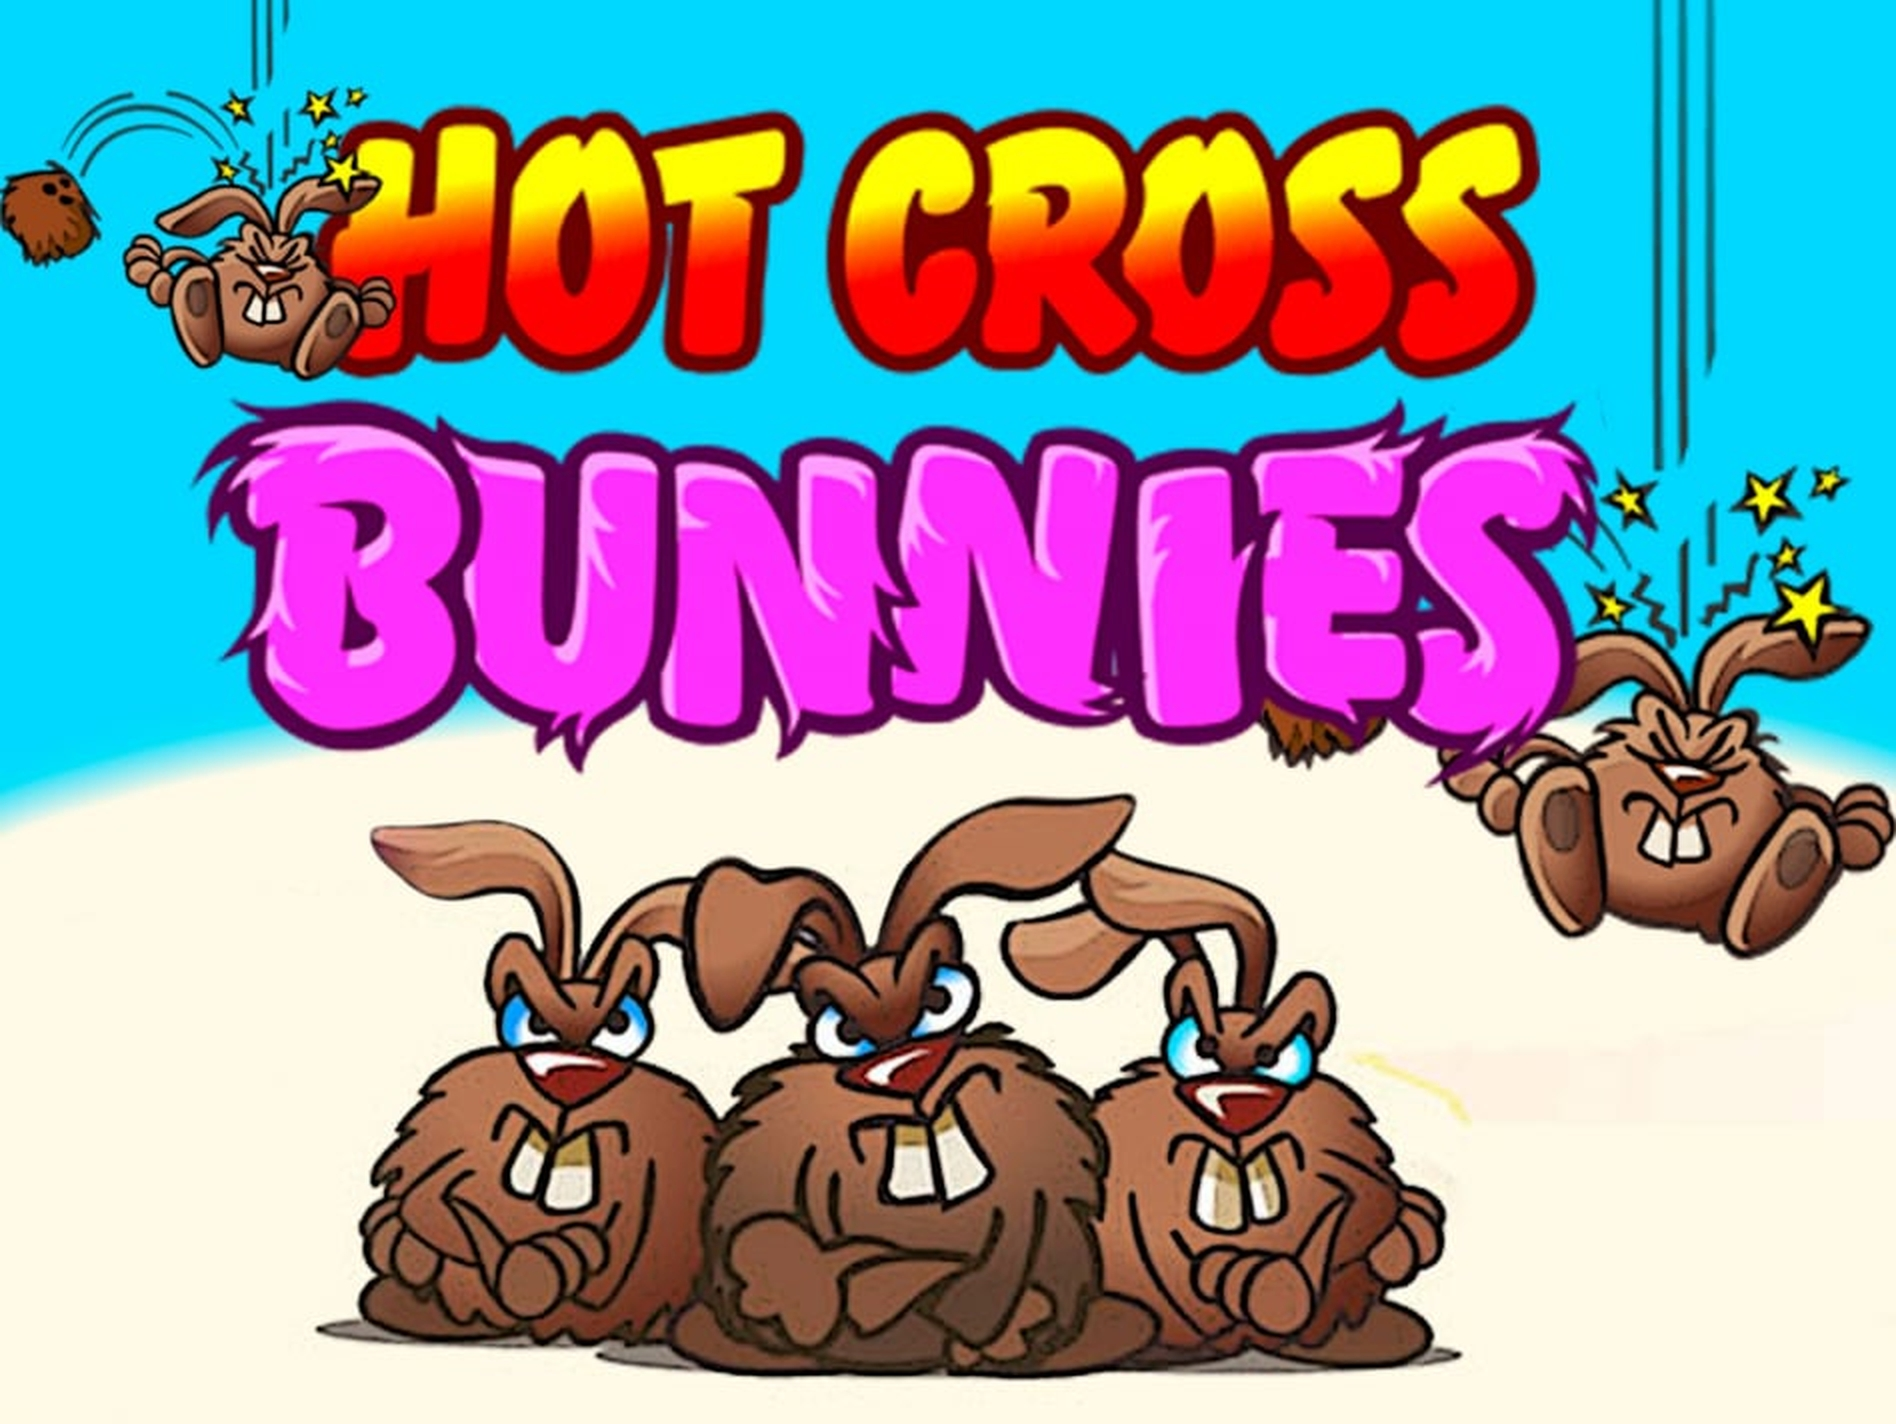 The Hot Cross Bunnies Online Slot Demo Game by Realistic Games